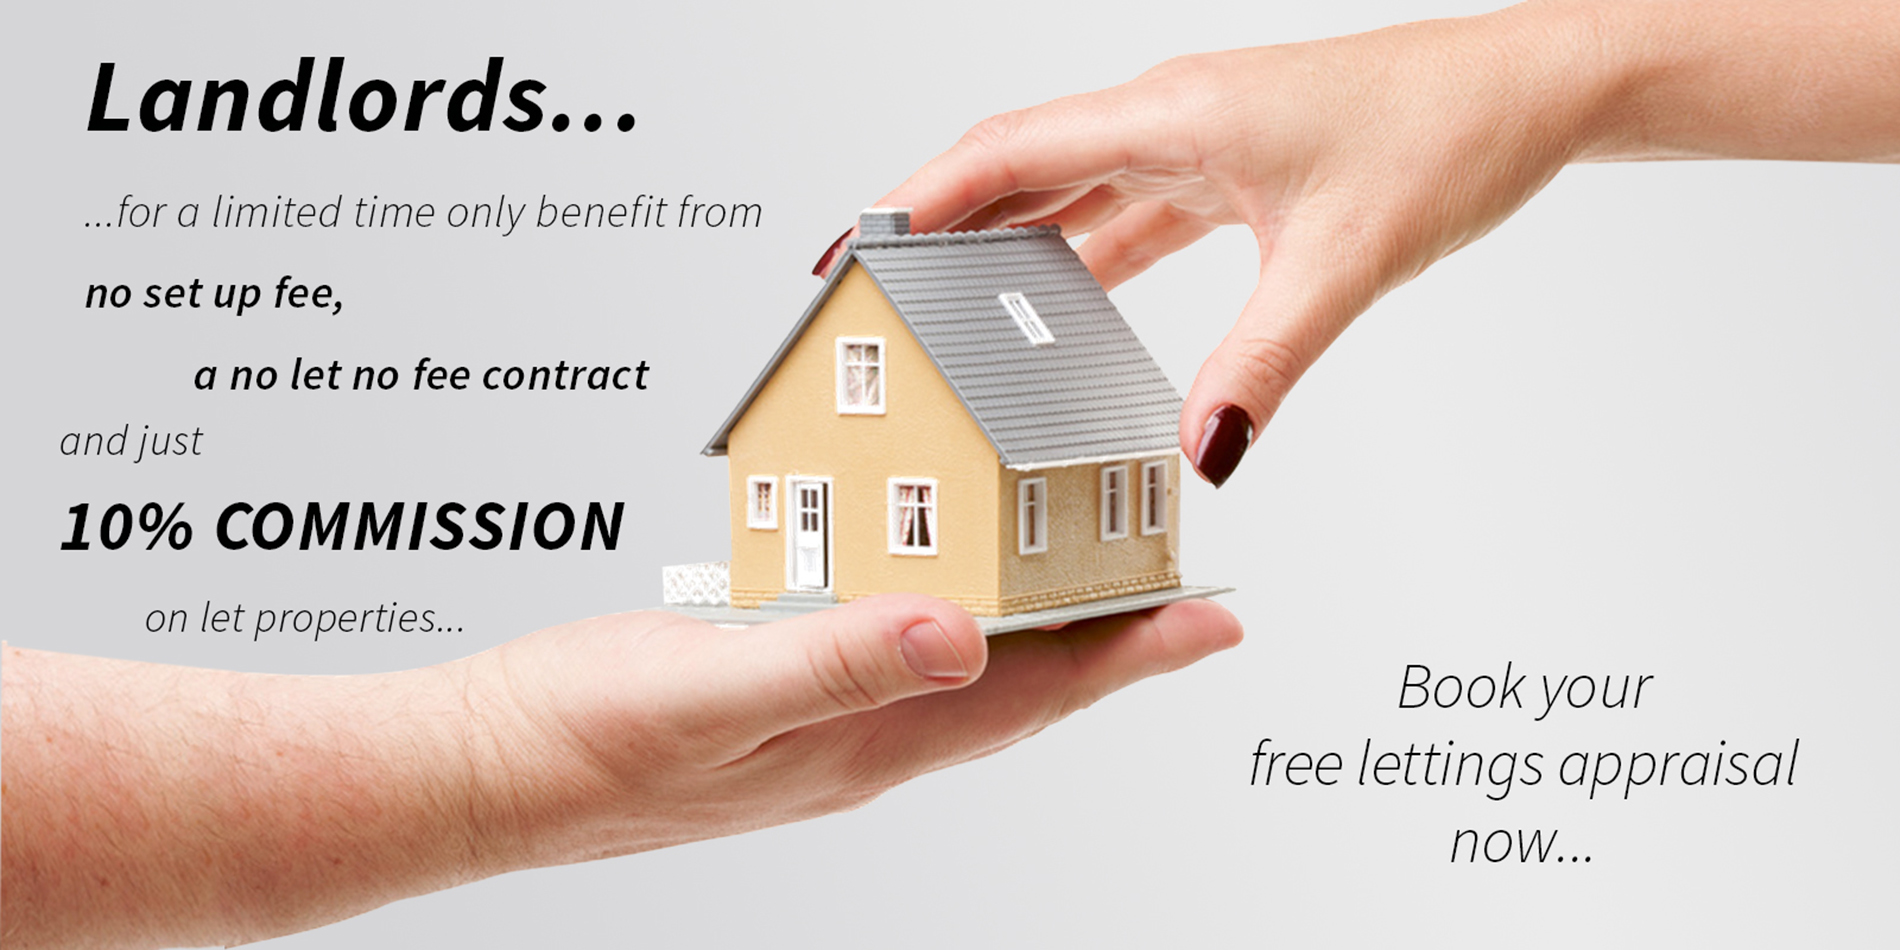 Lettings Banner - Landlords, for a limited time only, no set up fee, a no let no fee contract and just 10% commission on let properties.